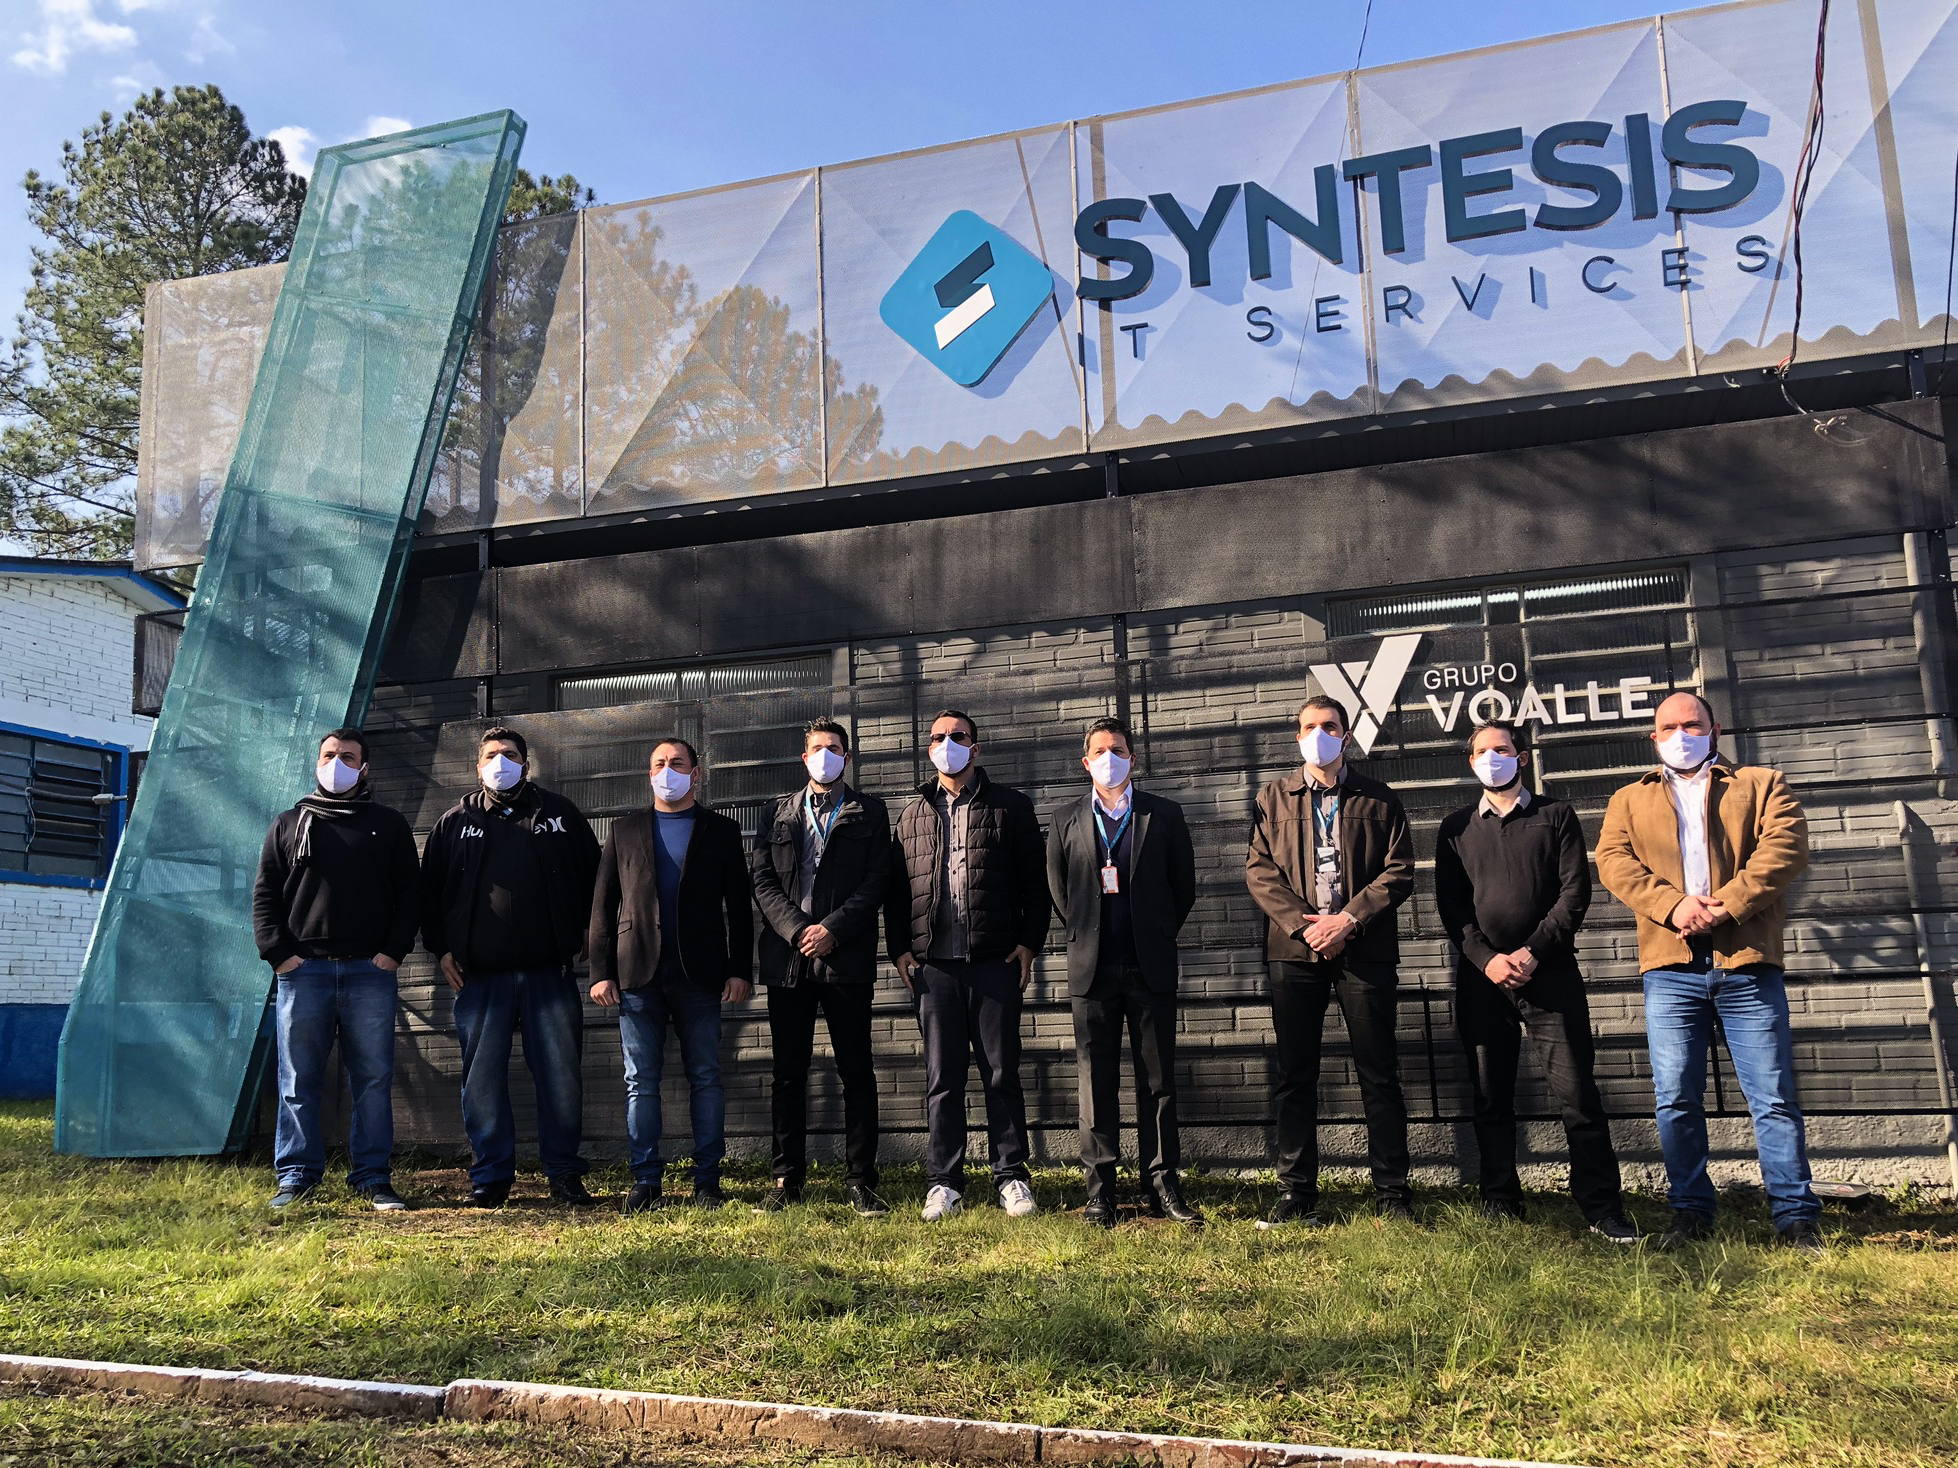 syntesis-it-empresa-do-grupo-voalle-inaugura-nova-sede-